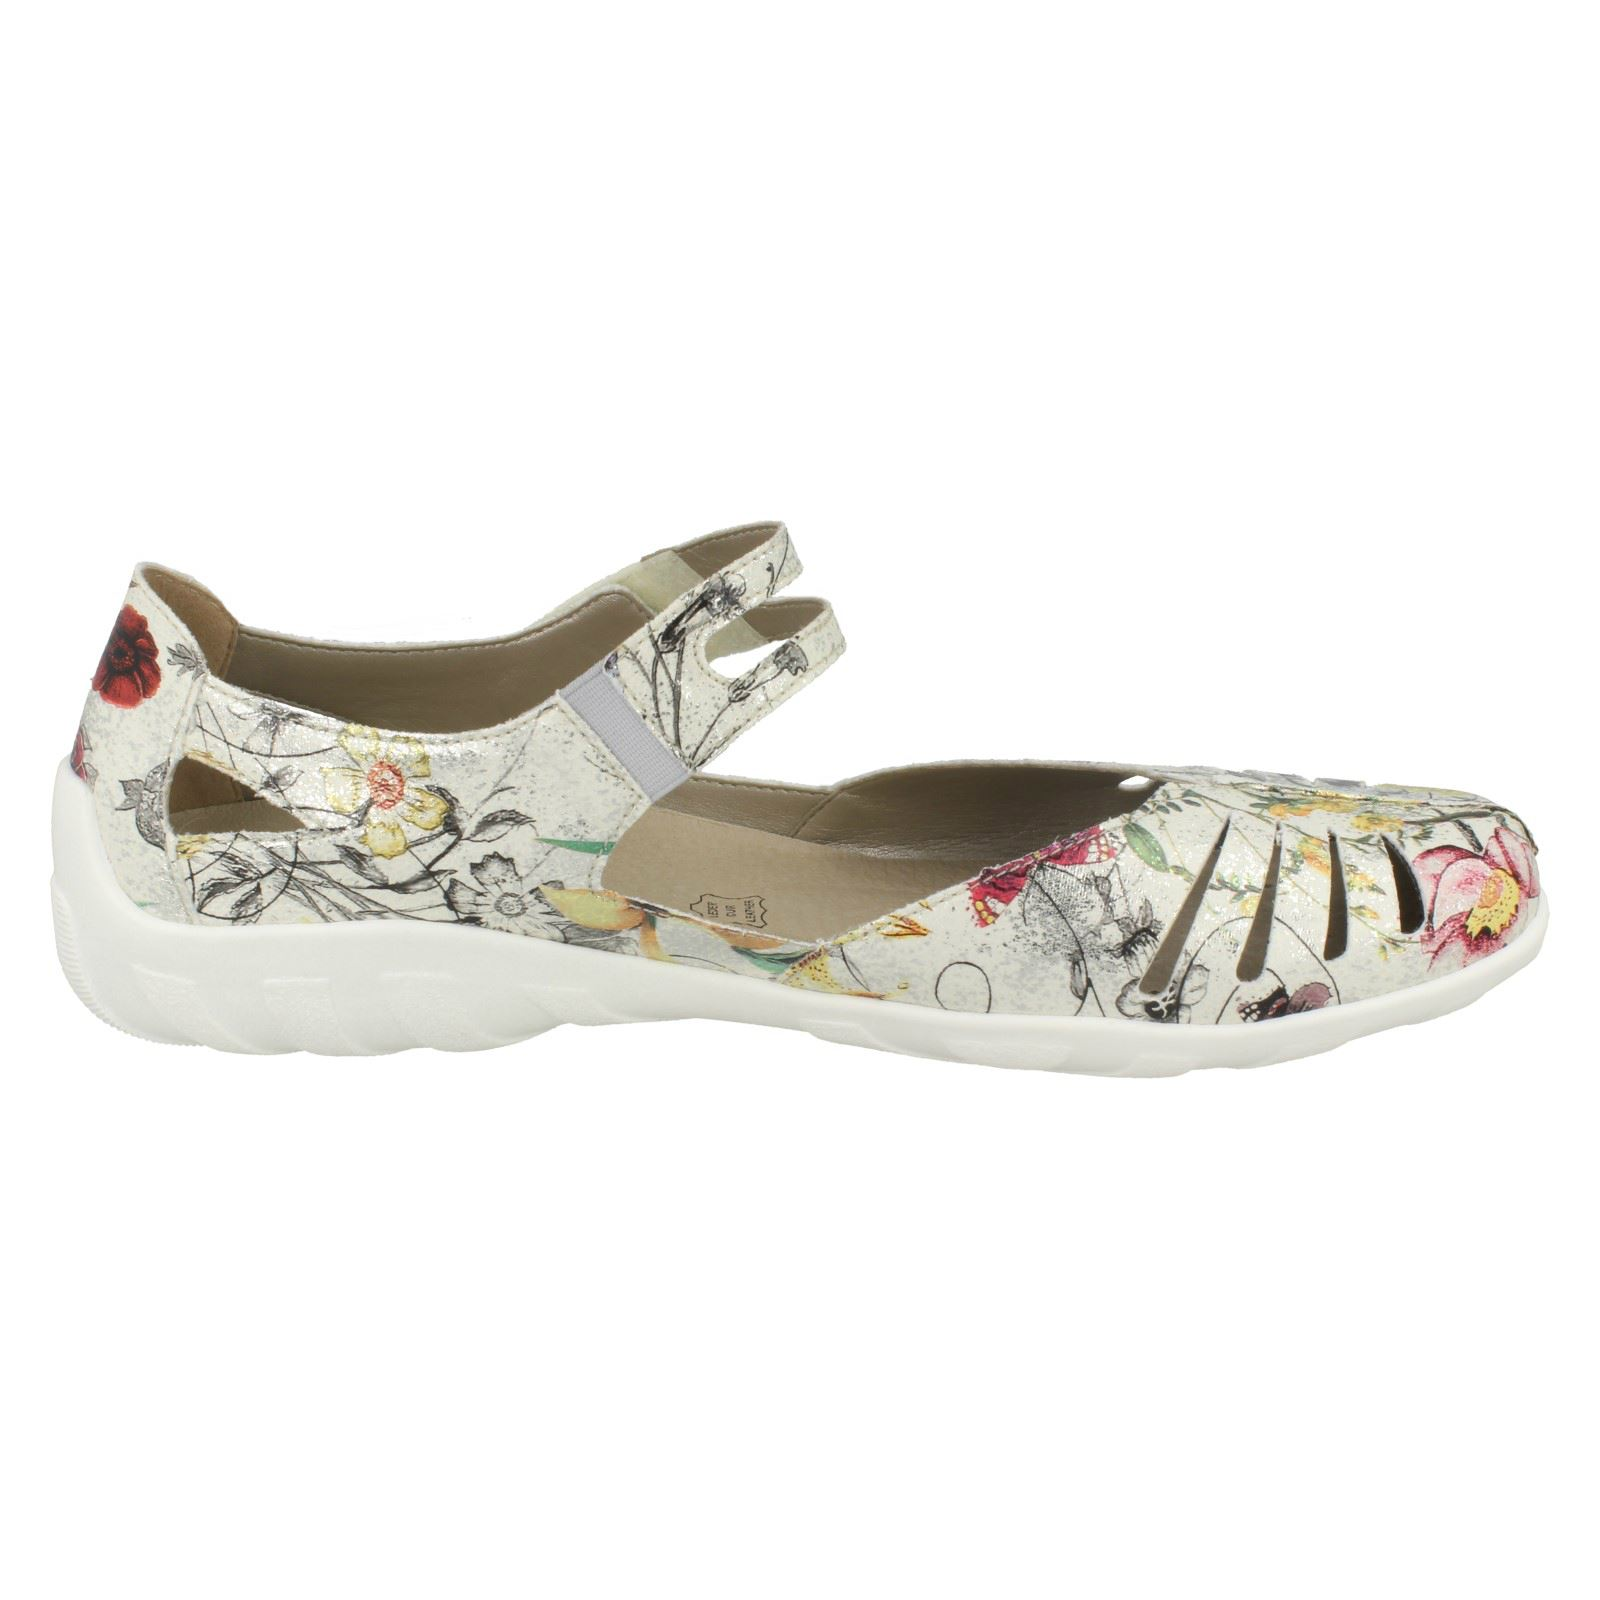 Ladies Remonte Casual Flat shoes - - - R3412 50ad21